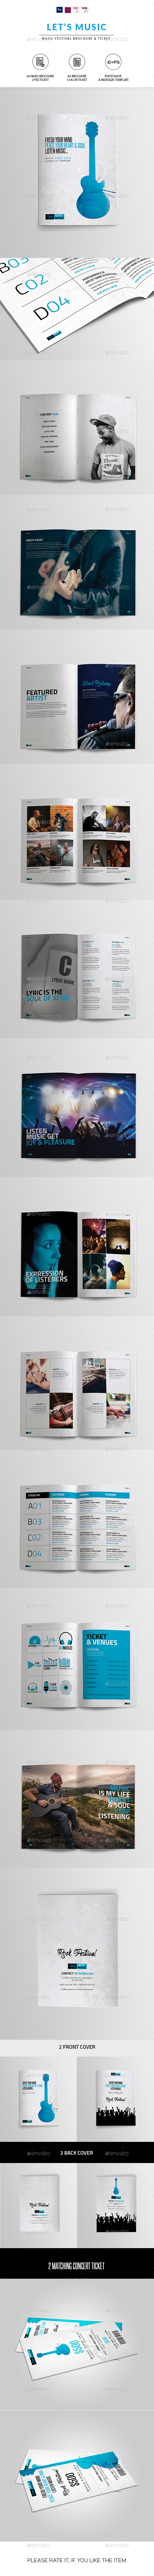 Music Festival Brochure | Indesign & Photoshop Template - Informational Brochures